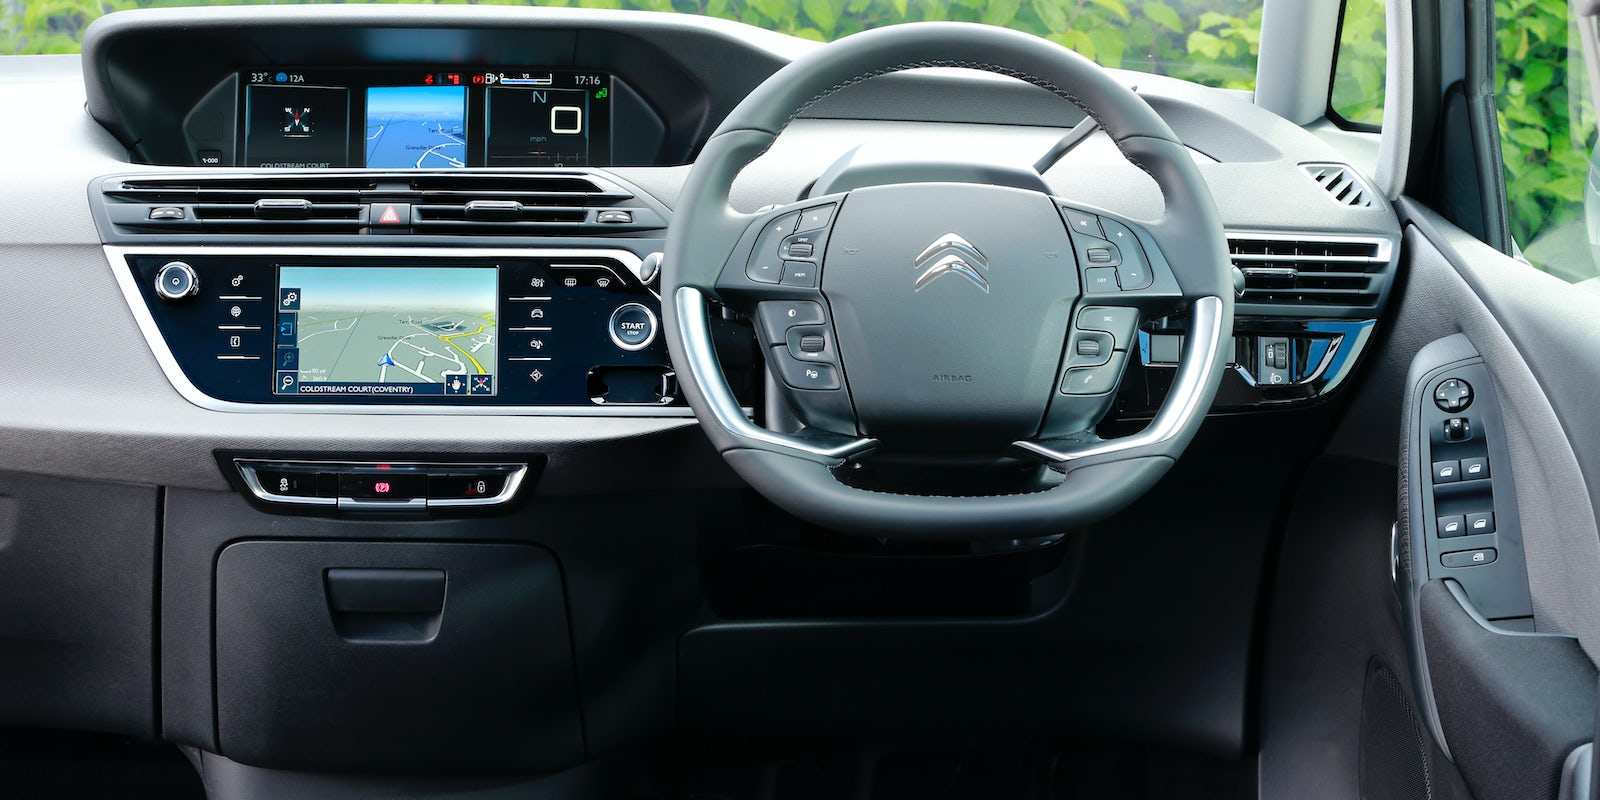 Citroen C4 SpaceTourer interior and infotainment | carwow